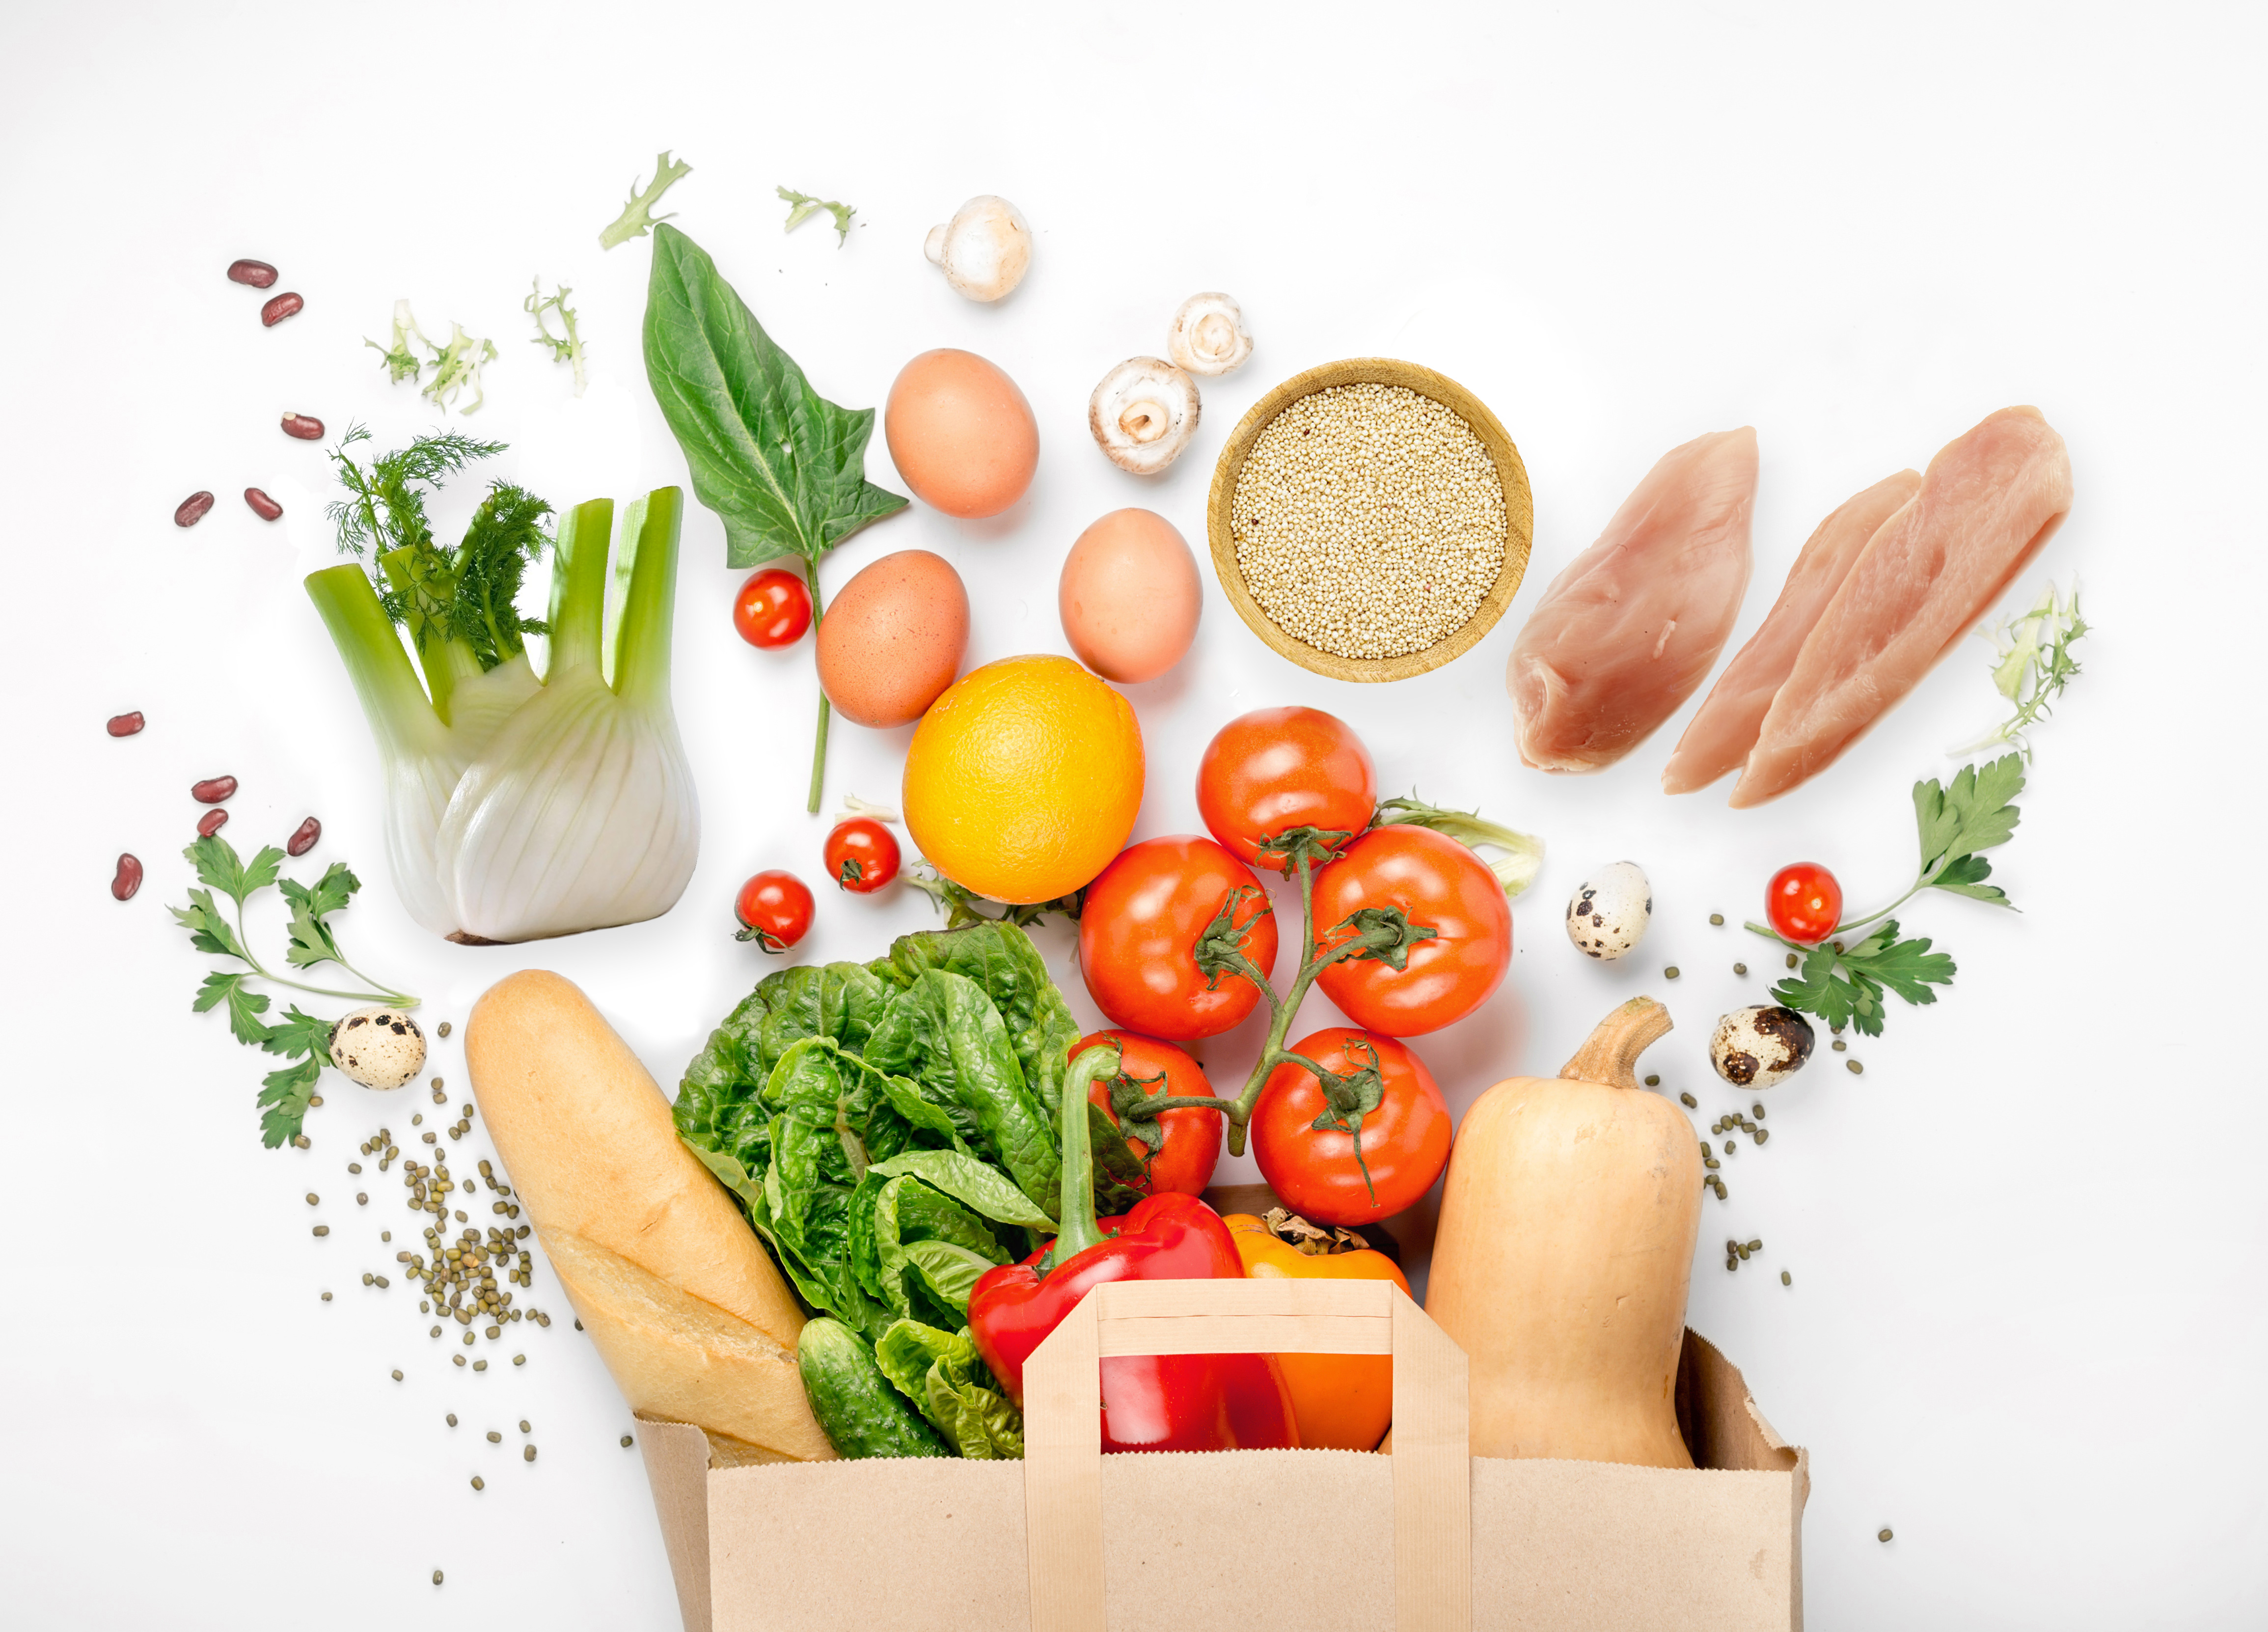 Full paper bag of different health food on white background Fit 4619x3323